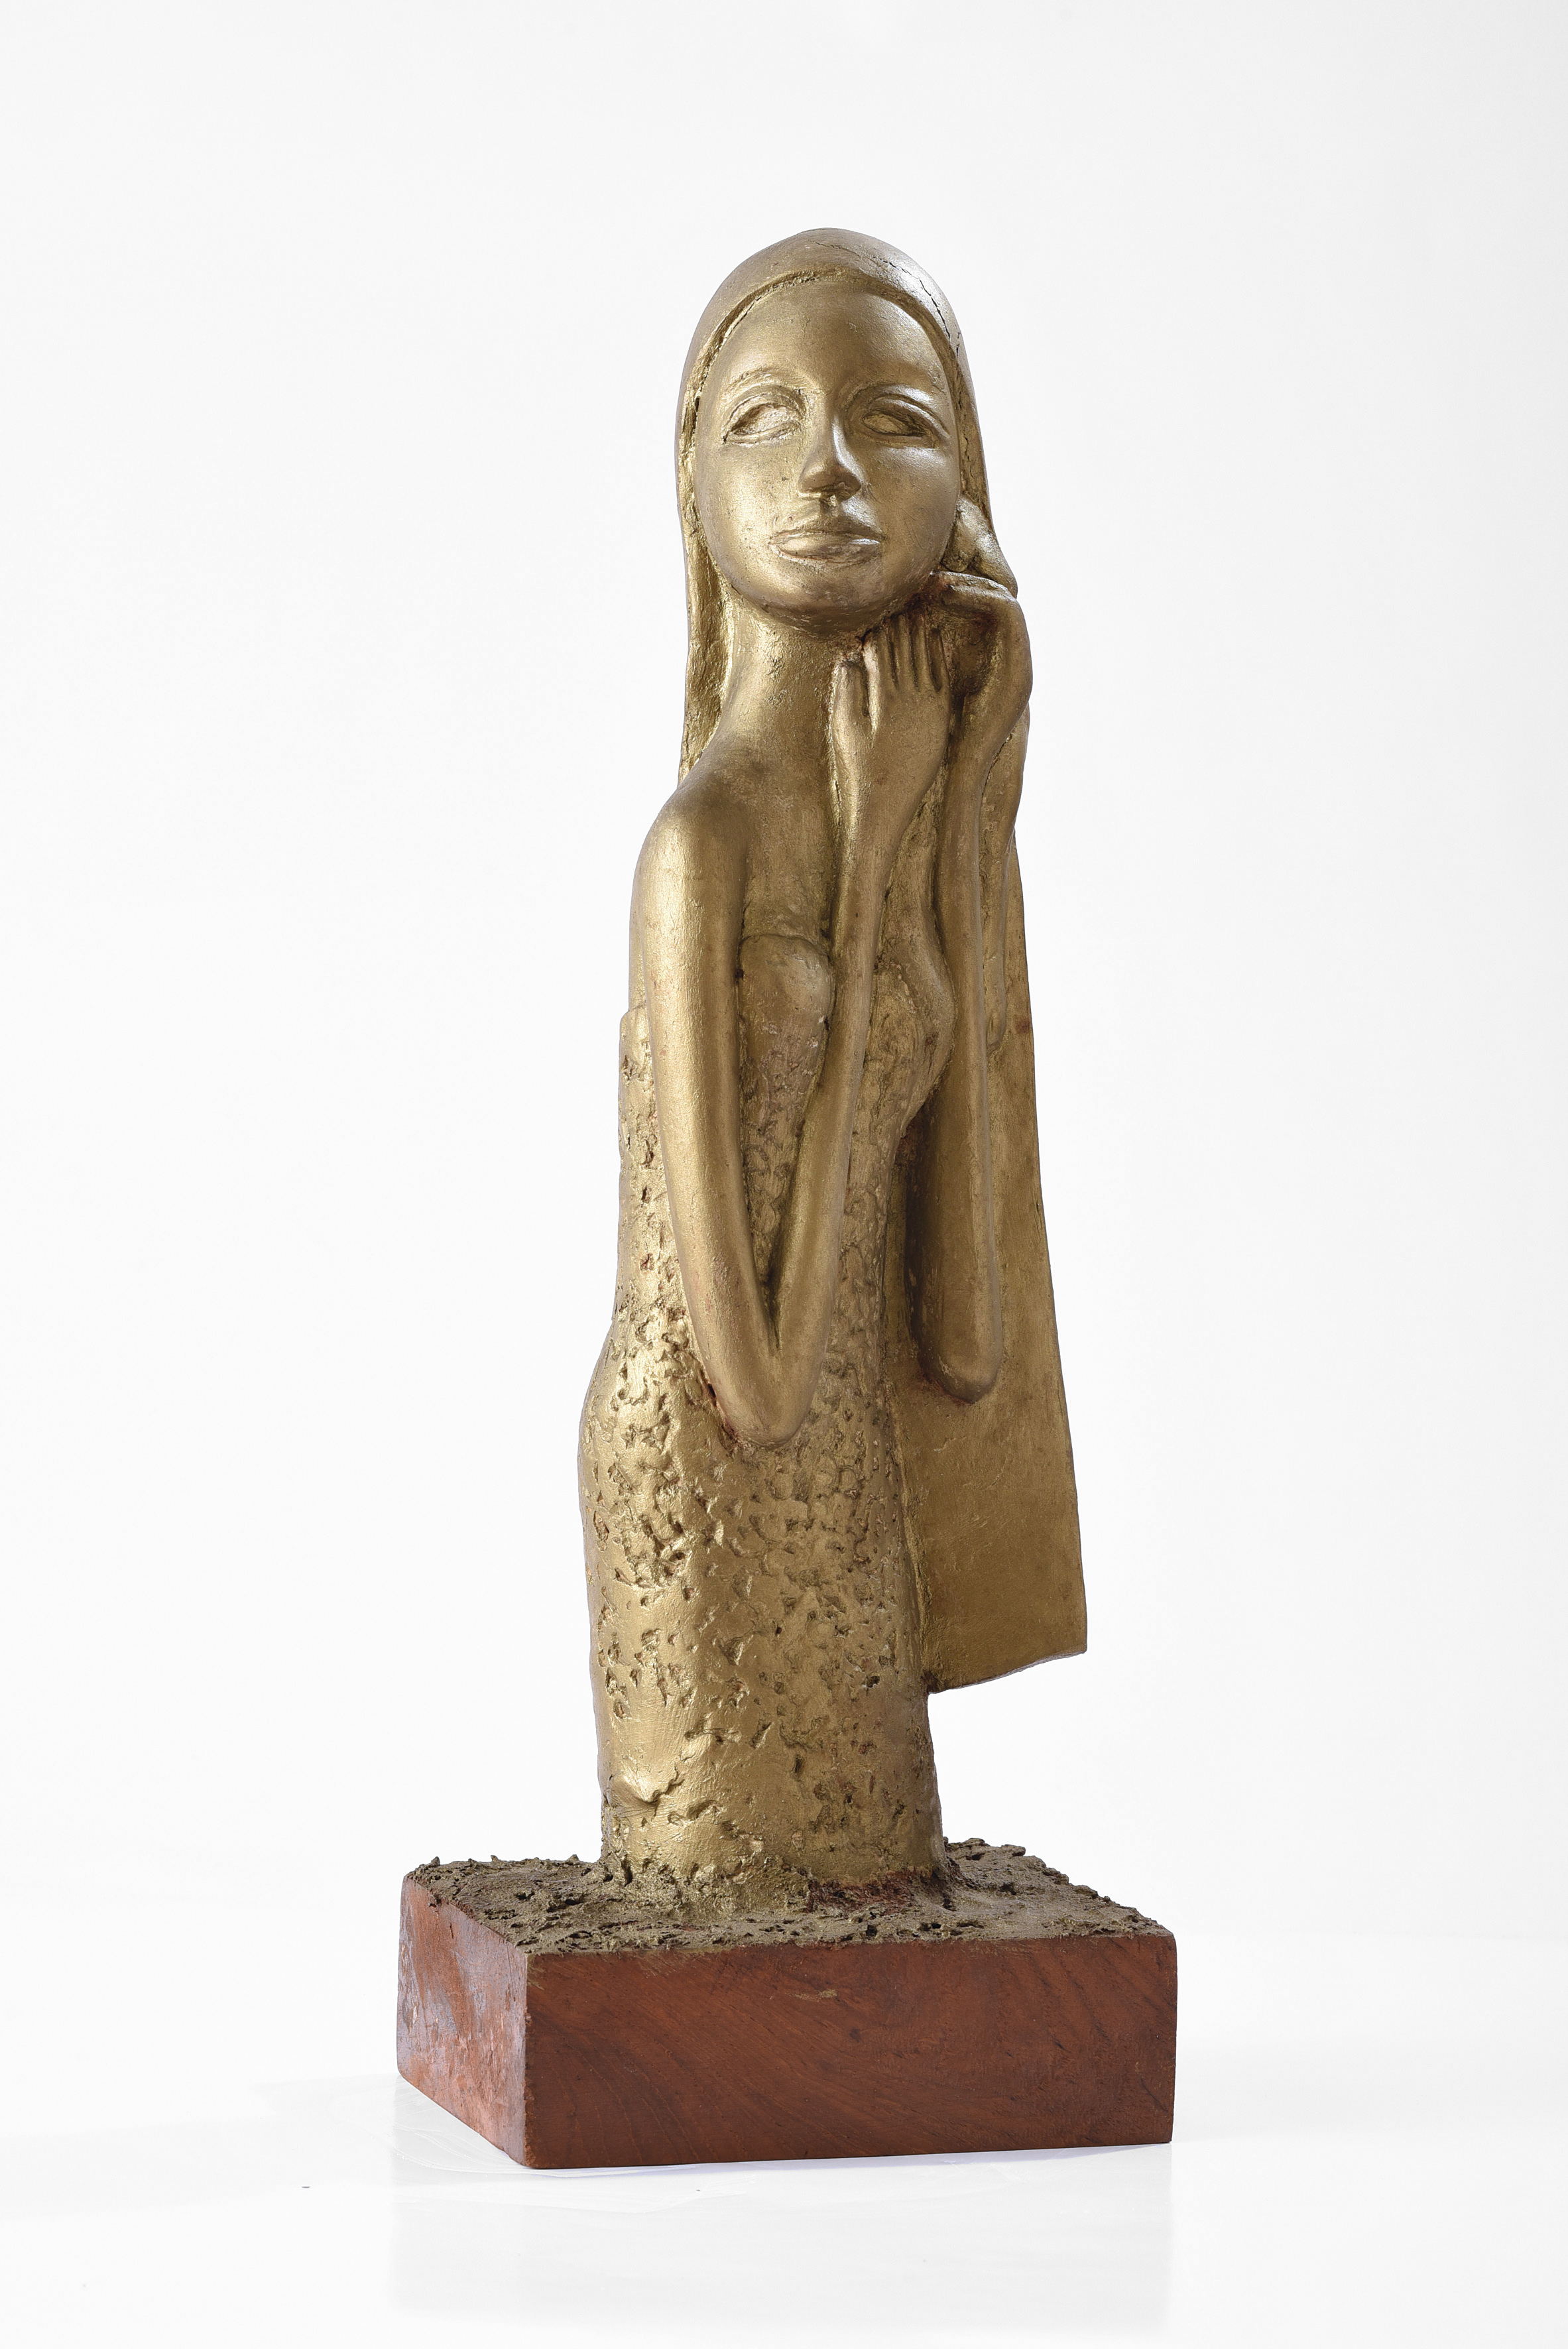 Cheong Soo Pieng, Malay Lady, fired earthenware with glaze on original base, 48 x 16.5 x 12.5 cm, 1970s